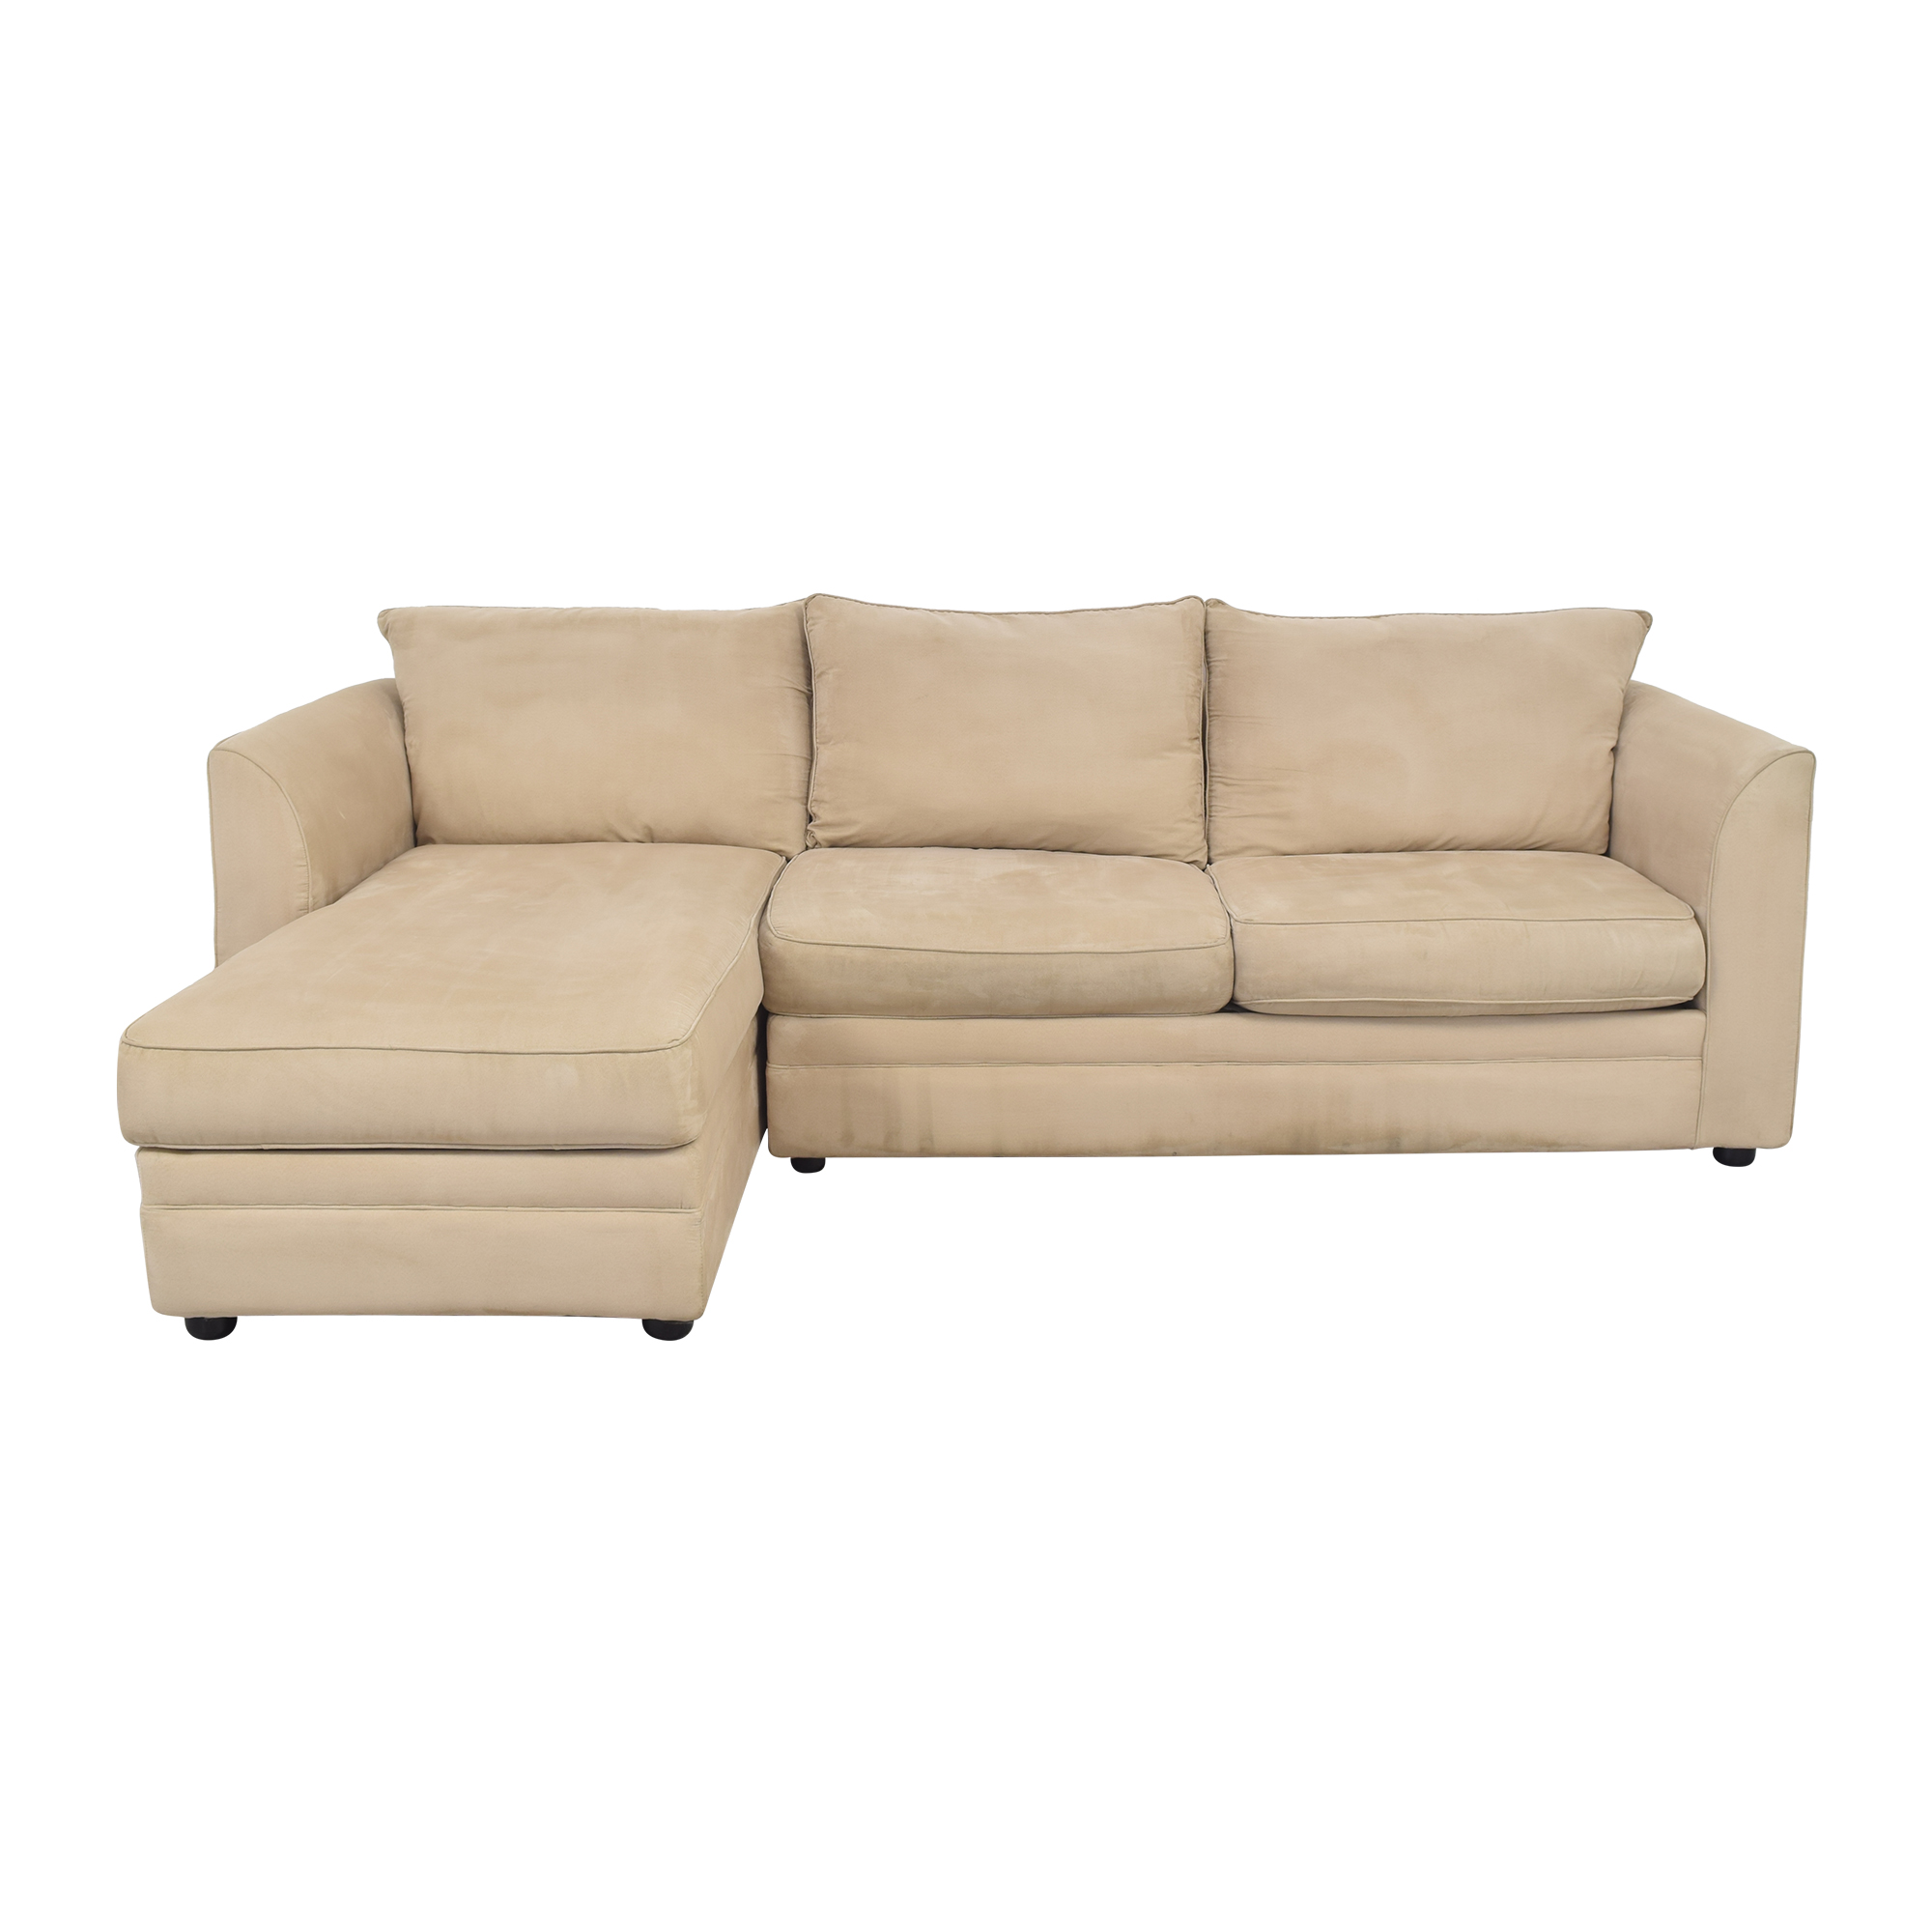 KFI KFI Chaise Sectional Sofa price